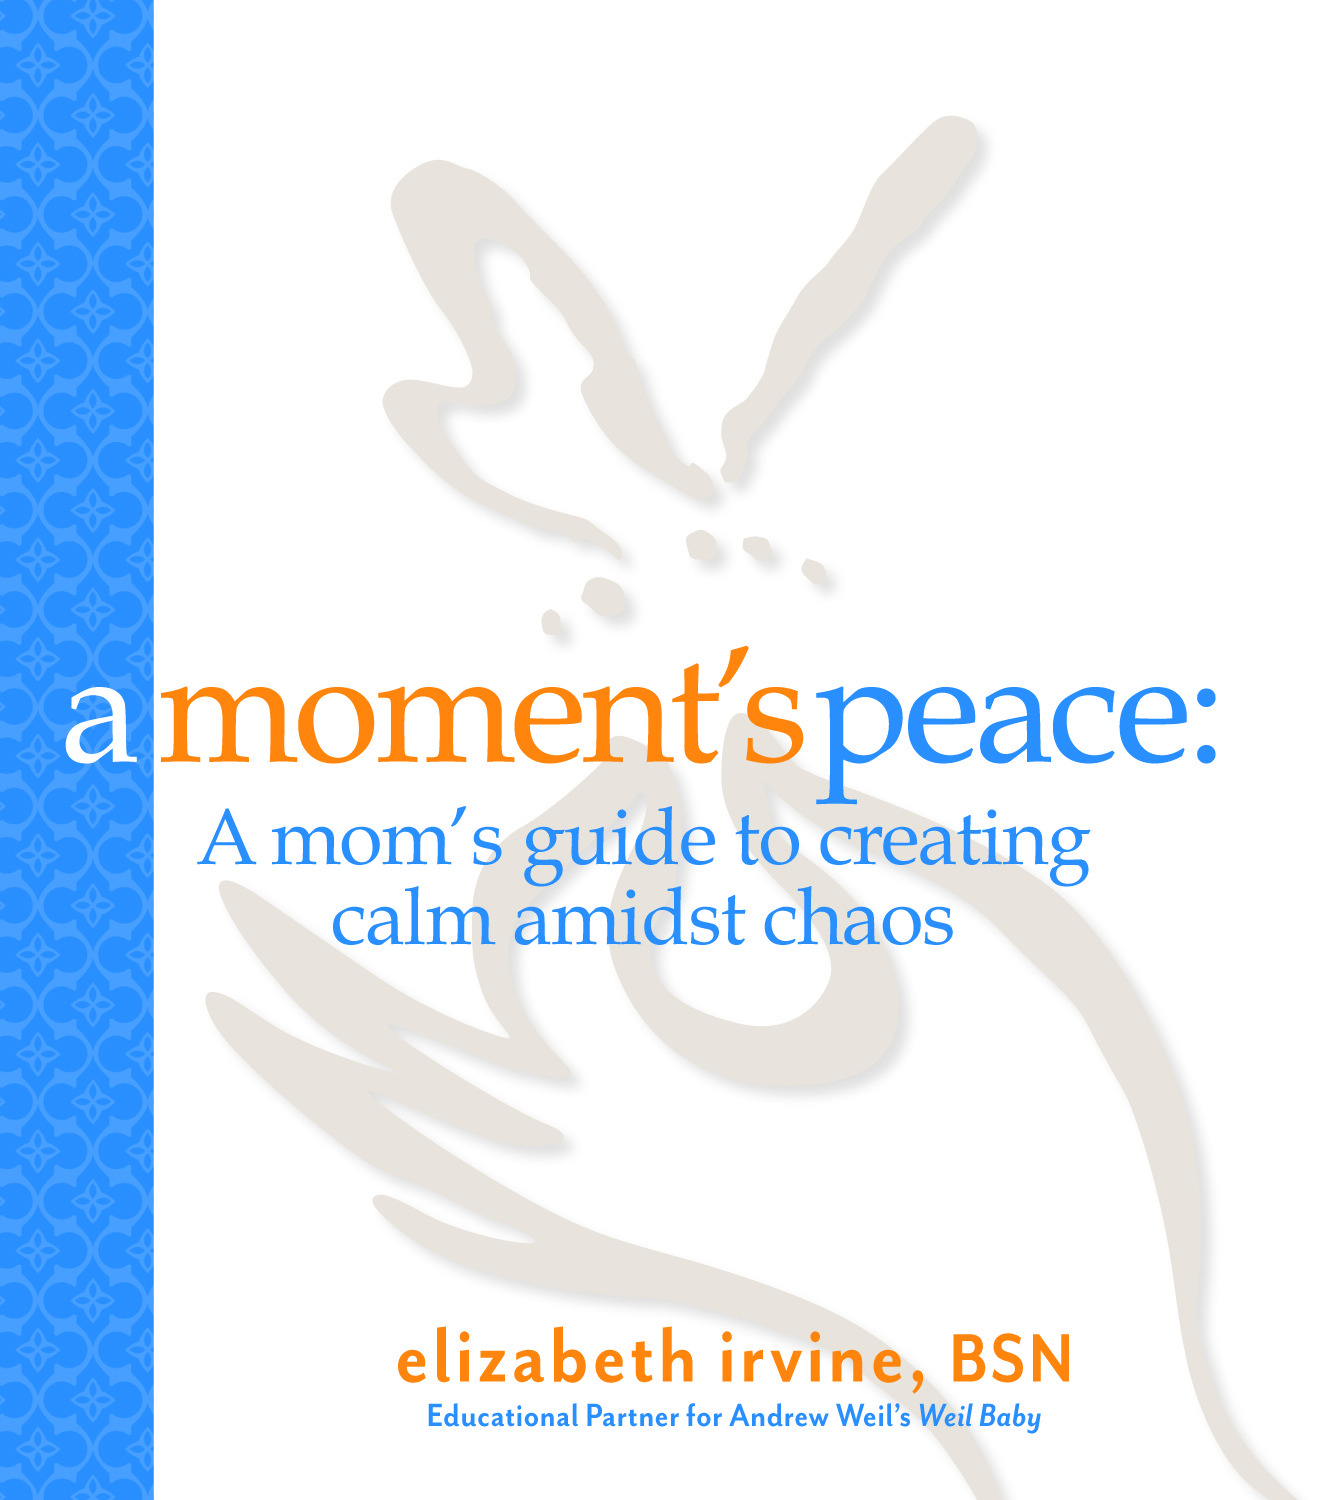 a-moments-peace-book-author-elizabeth-irvine-truewellbeing